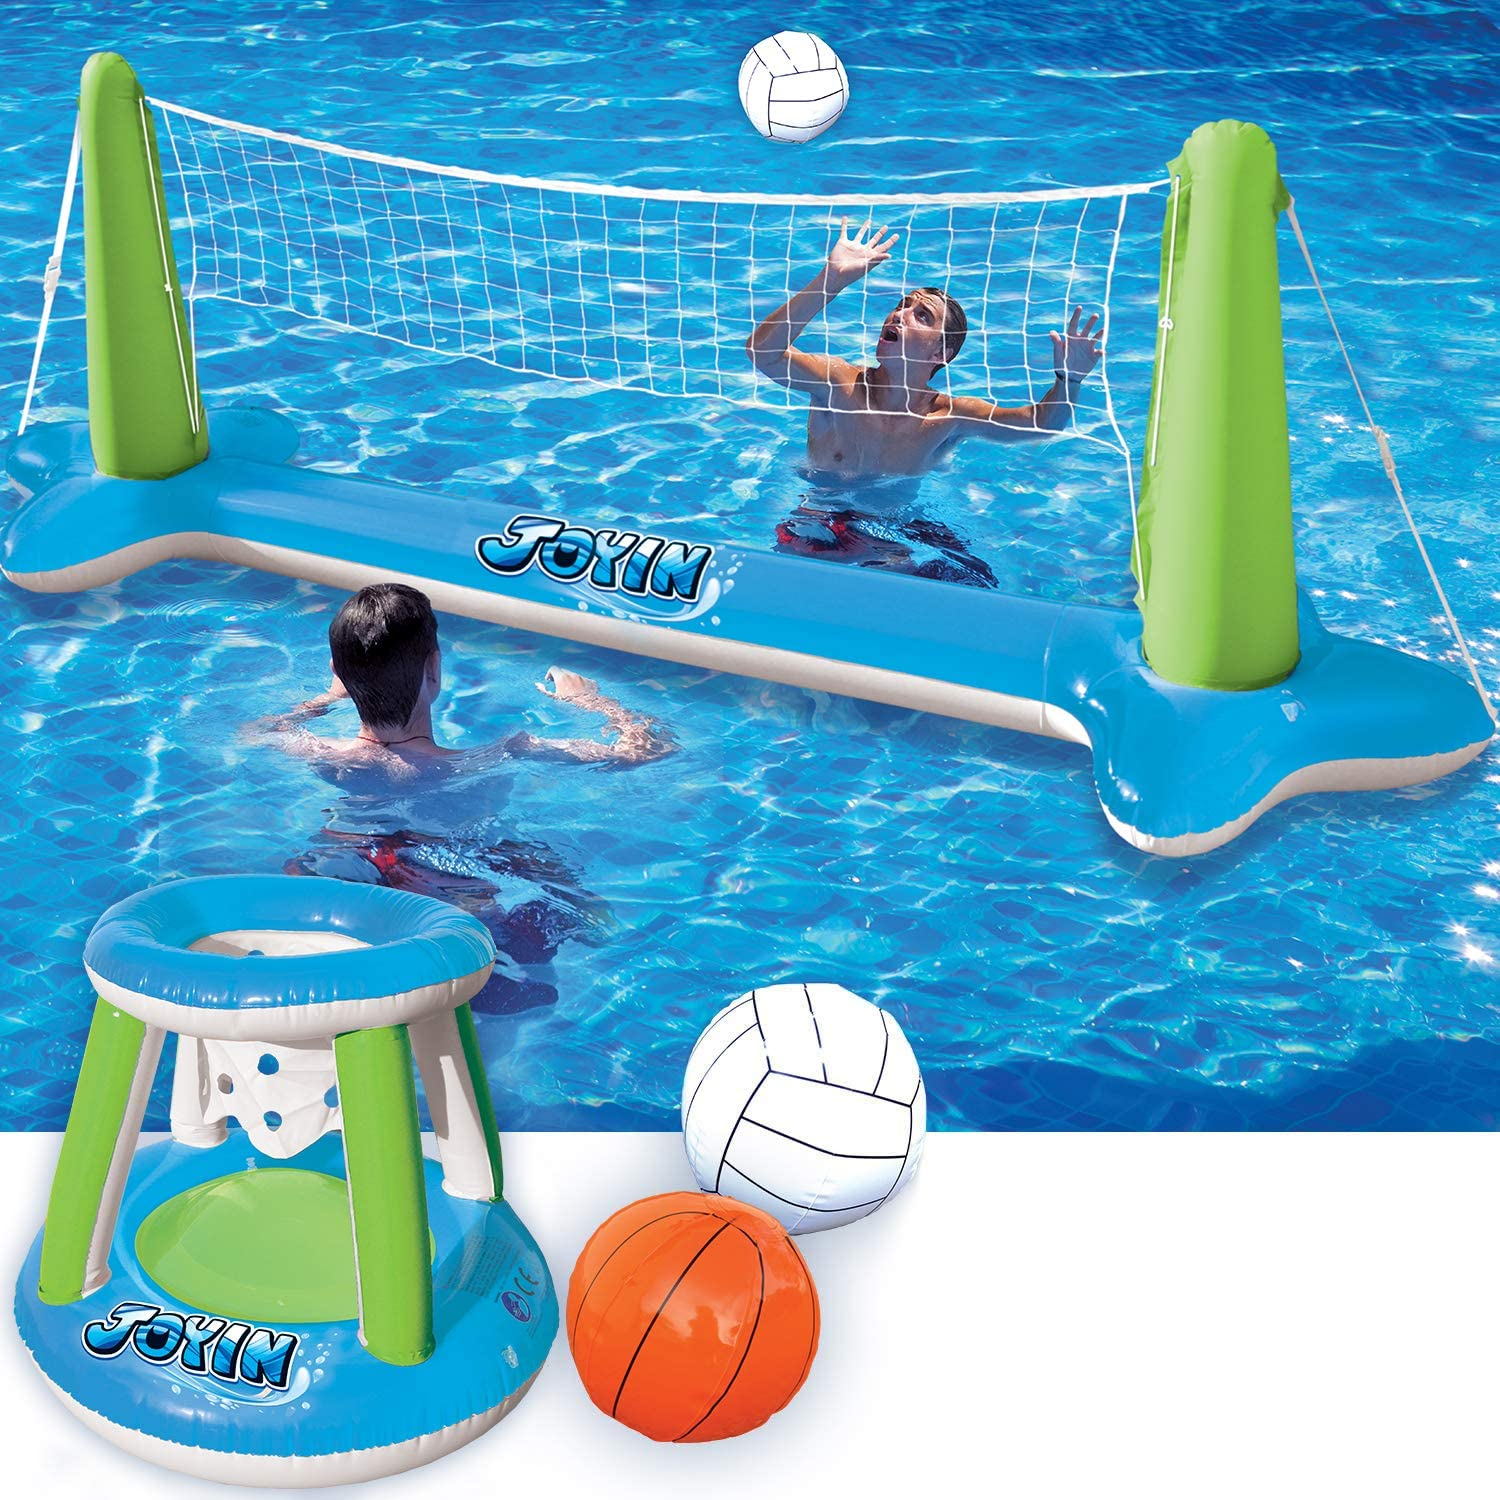 Inflatable Volleyball Net Basketball Regular discount wholesale Hoops Green F Pool Blue